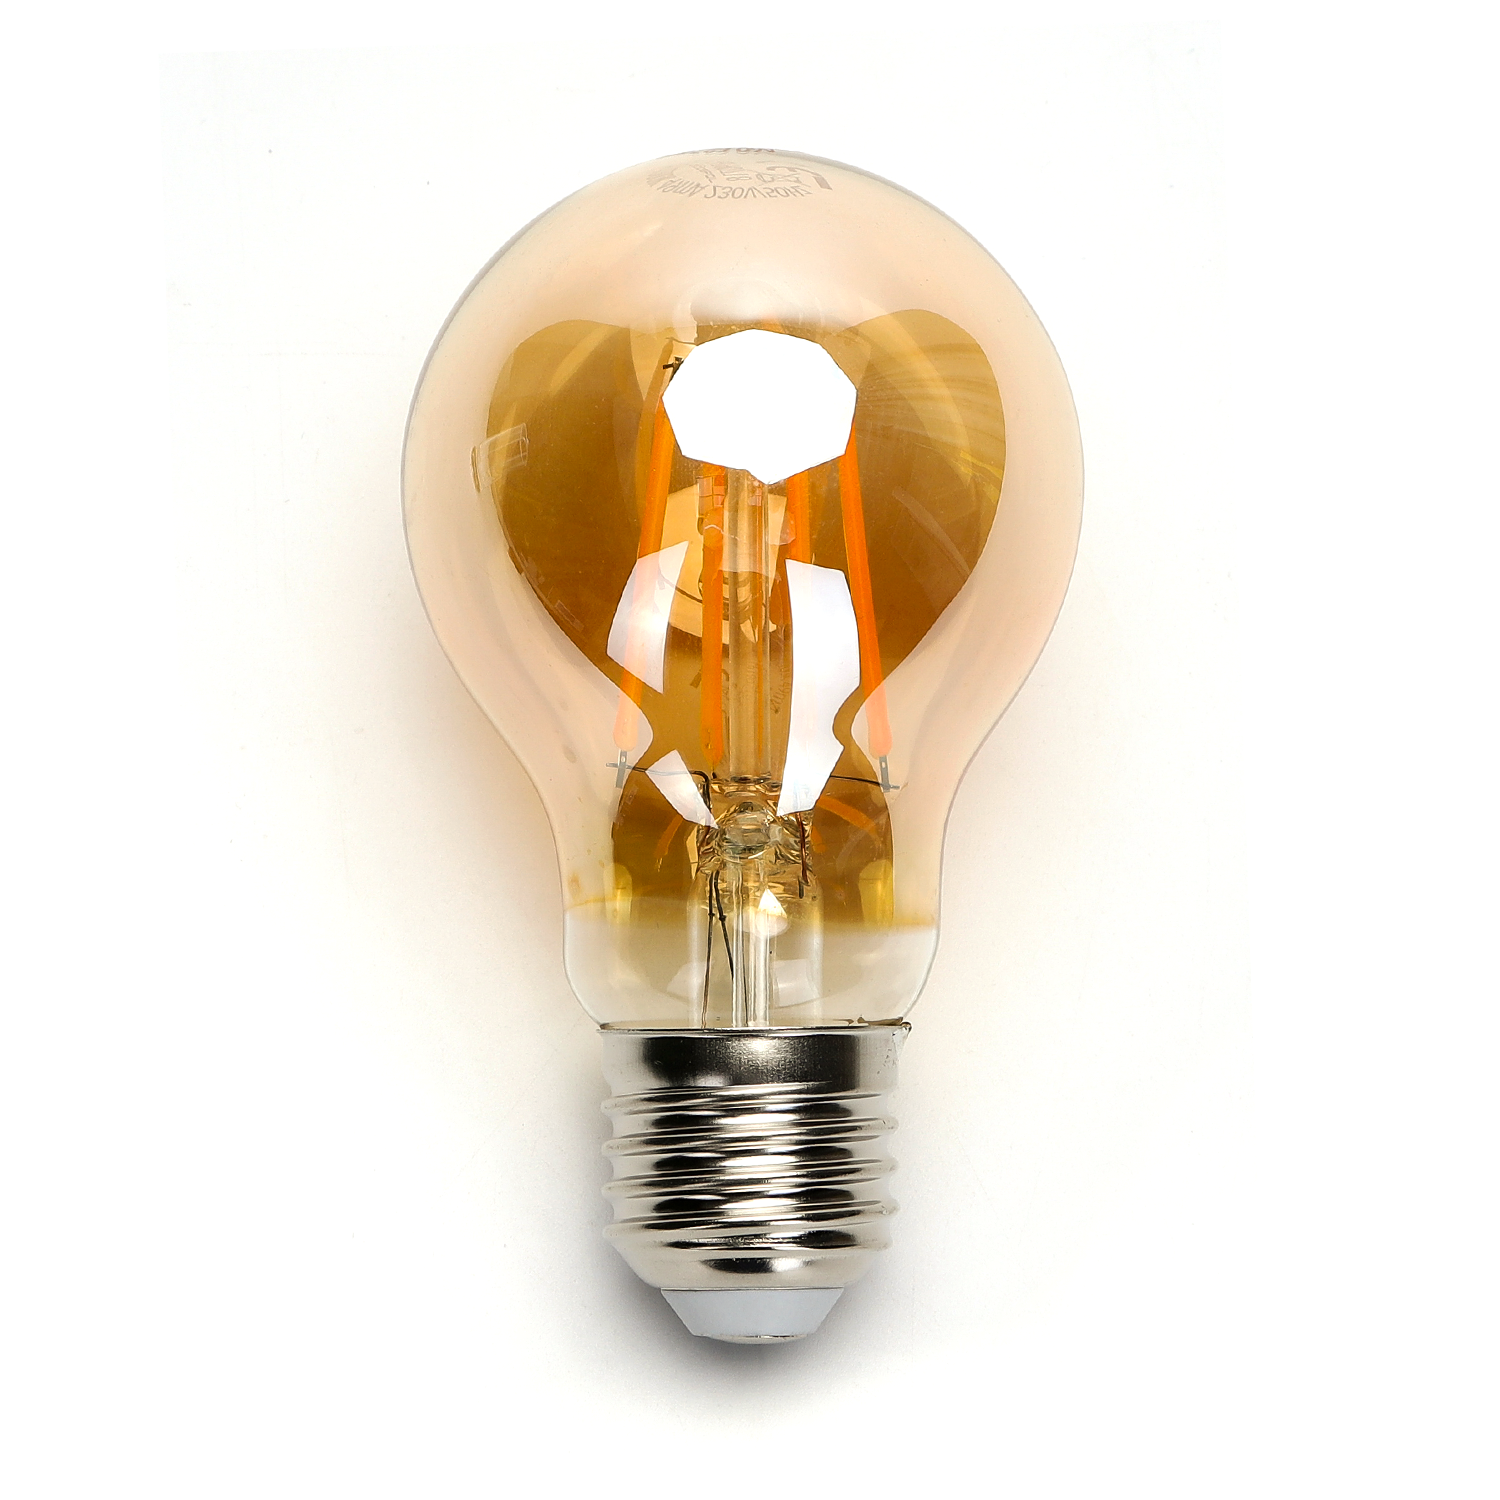 LED amber lamp filament 6 Watt grote fitting E27 2200K warm wit - lamp